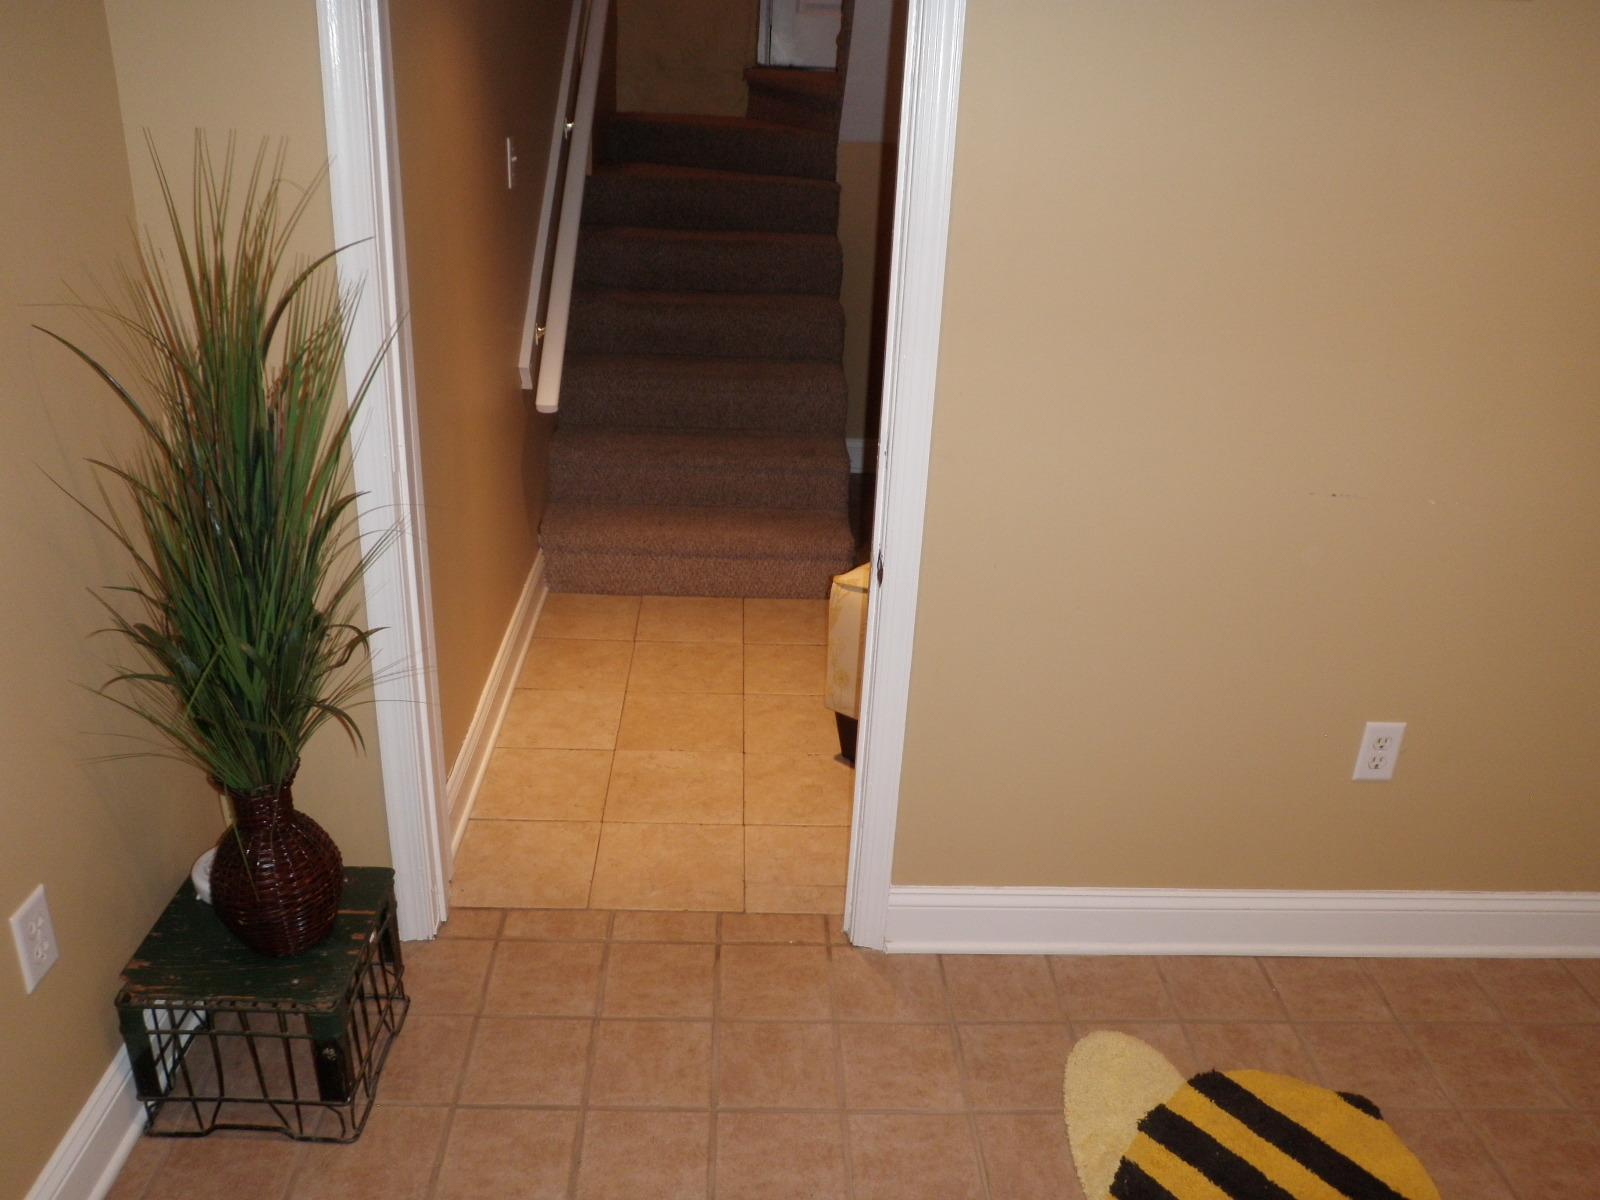 Basement repairs in Middletown, DE - After Photo